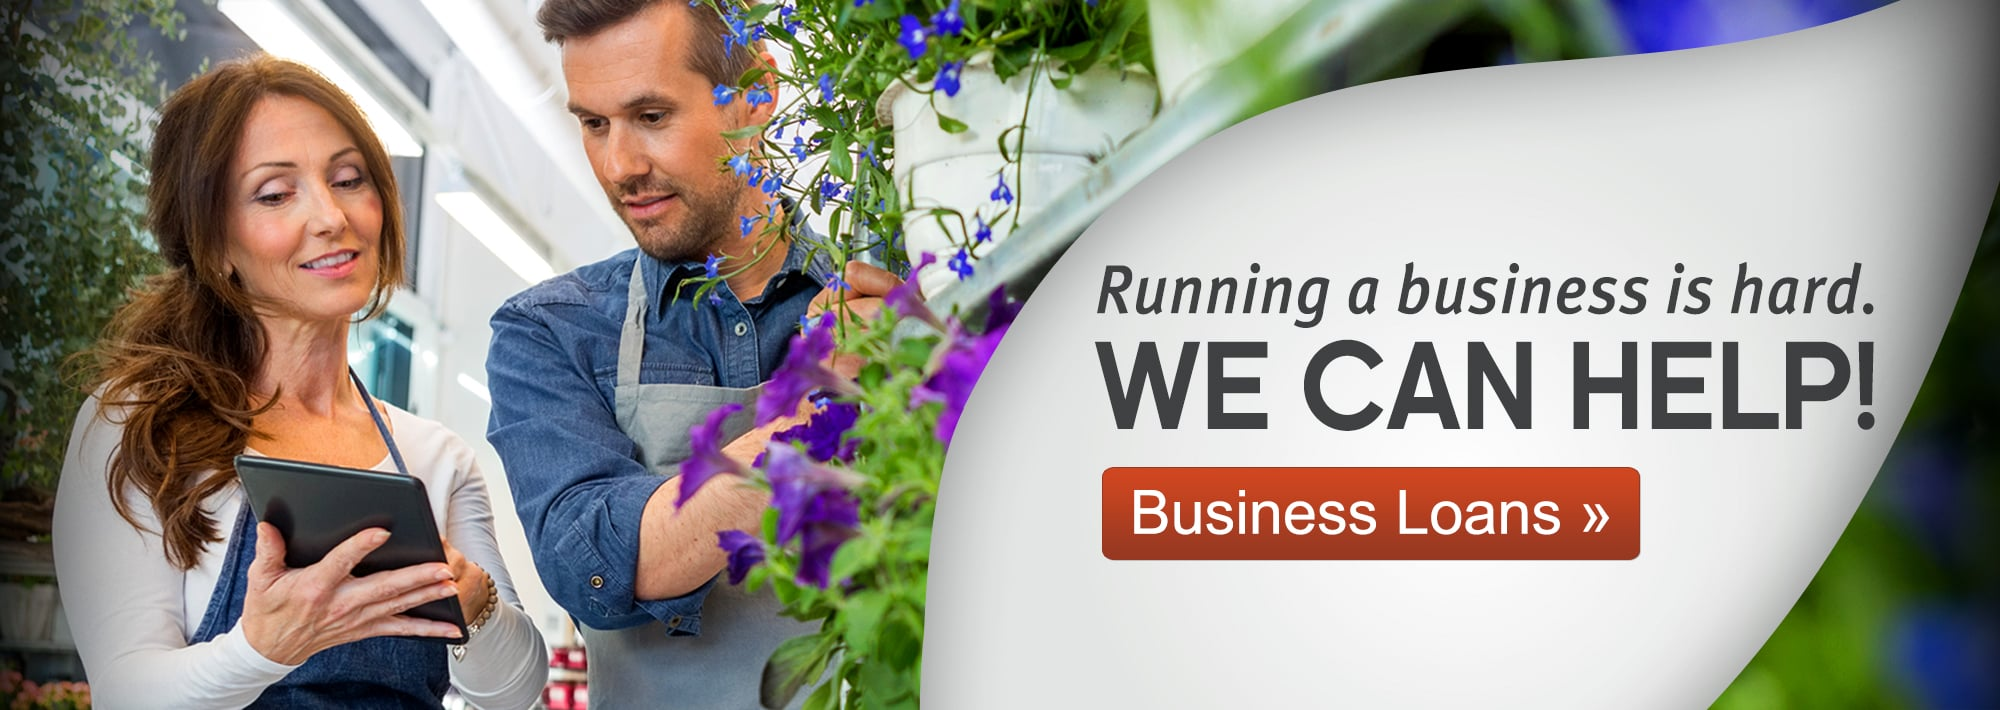 Running a business is hard—We can help!